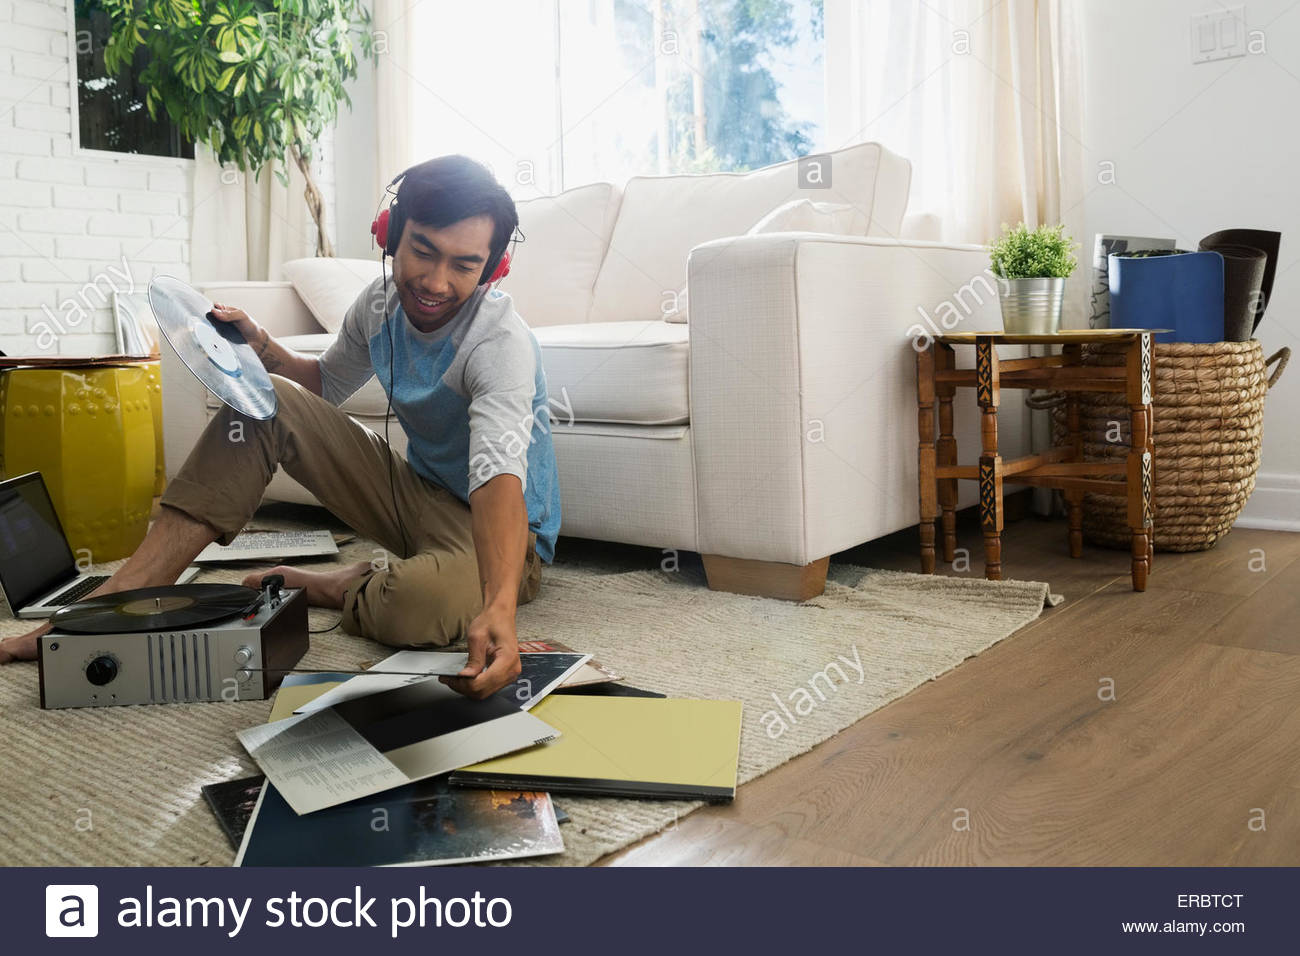 Man with headphones listening vinyl records living room - Stock Image